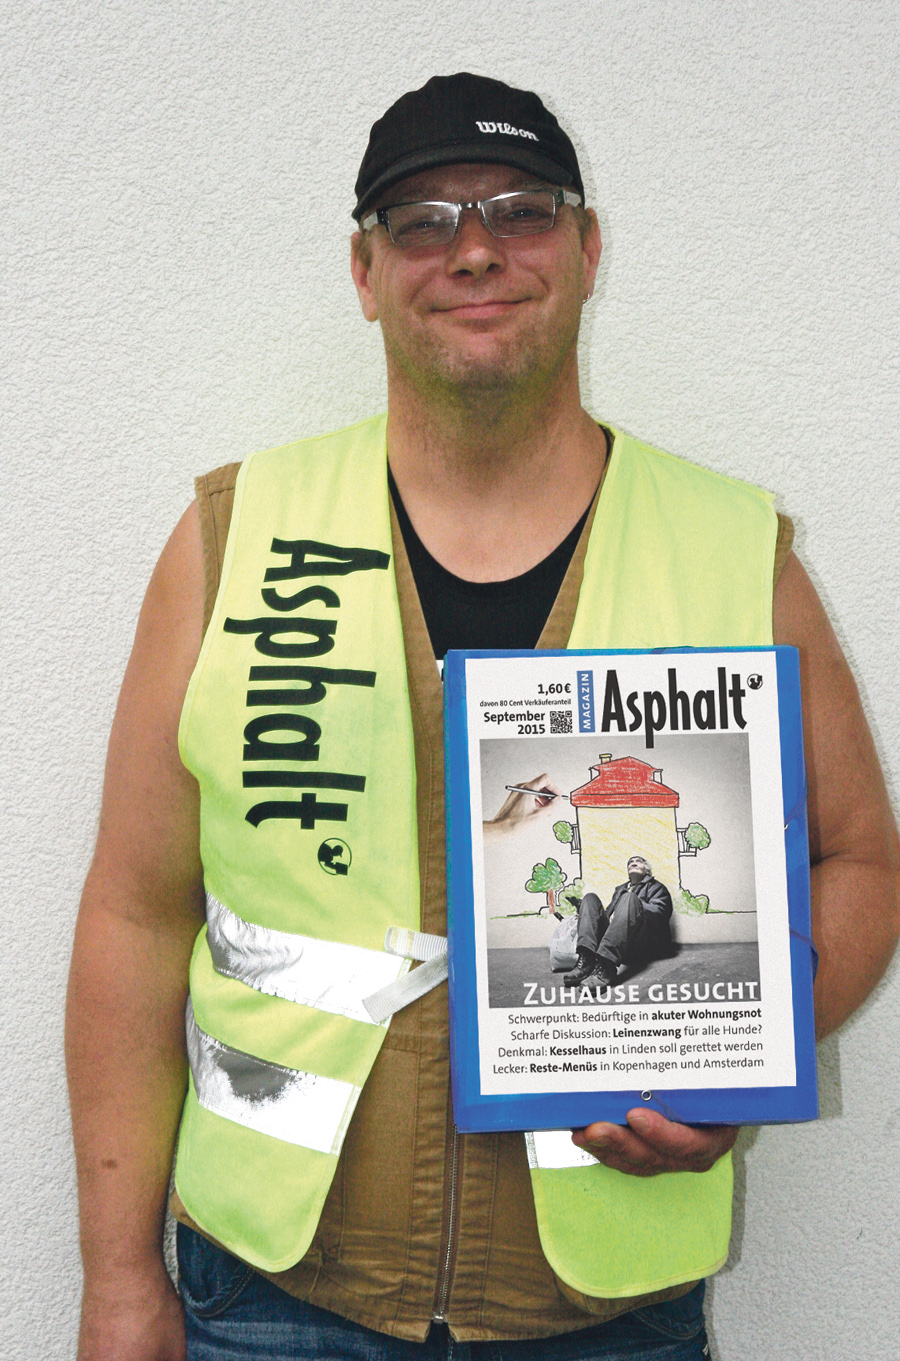 Mario selling Asphalt Photo: Karin Powser